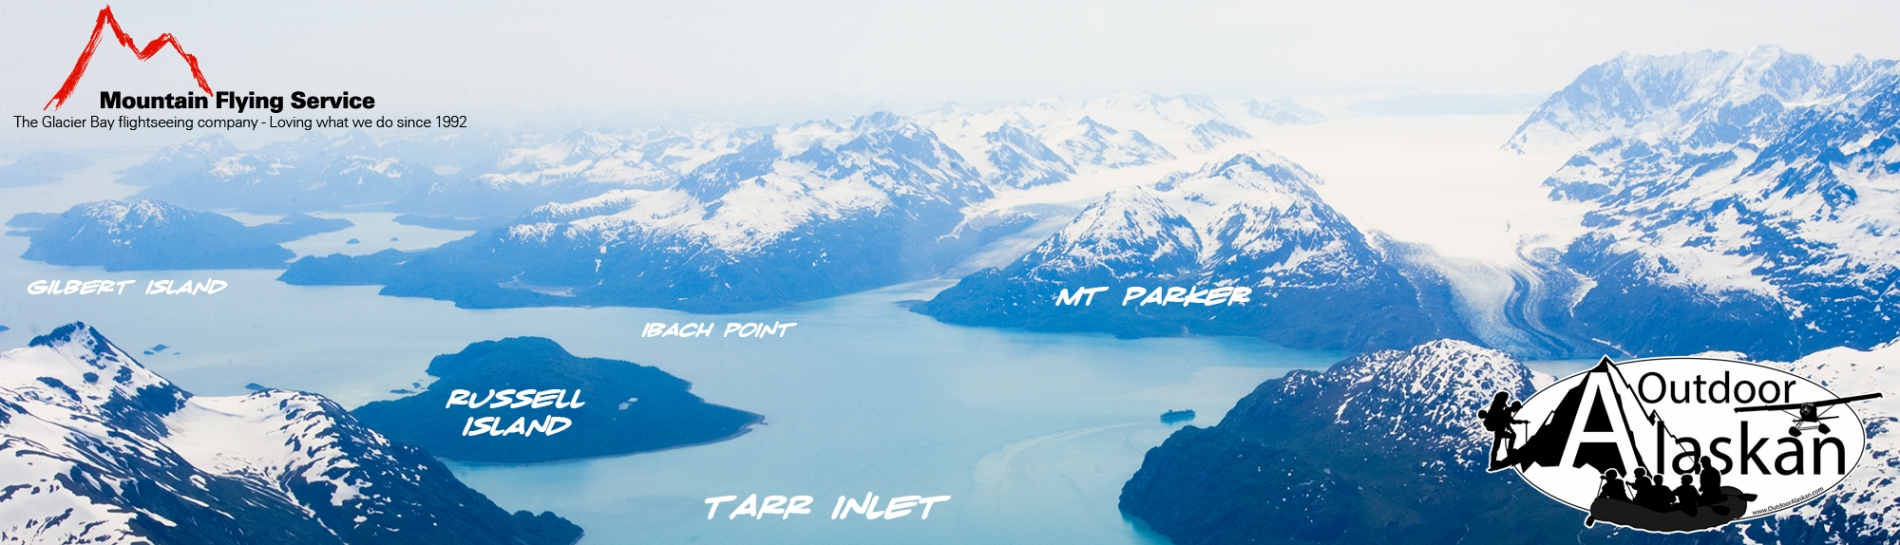 Looking south down Tarr Inlet. Lamplugh Glacier to the left of Mount Parker and Reid Glacier to the right of it. Reid Inlet between Ibach Point and Mt Parker. July 2009.